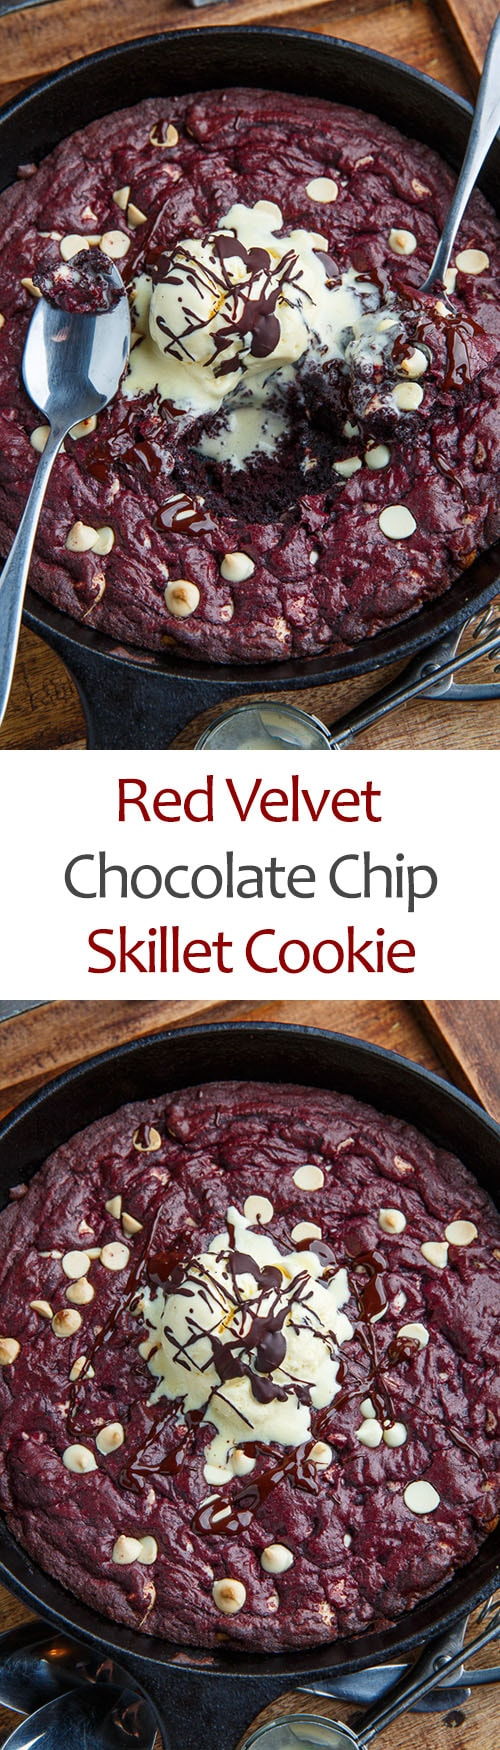 Red Velvet White Chocolate Chip Skillet Cookie